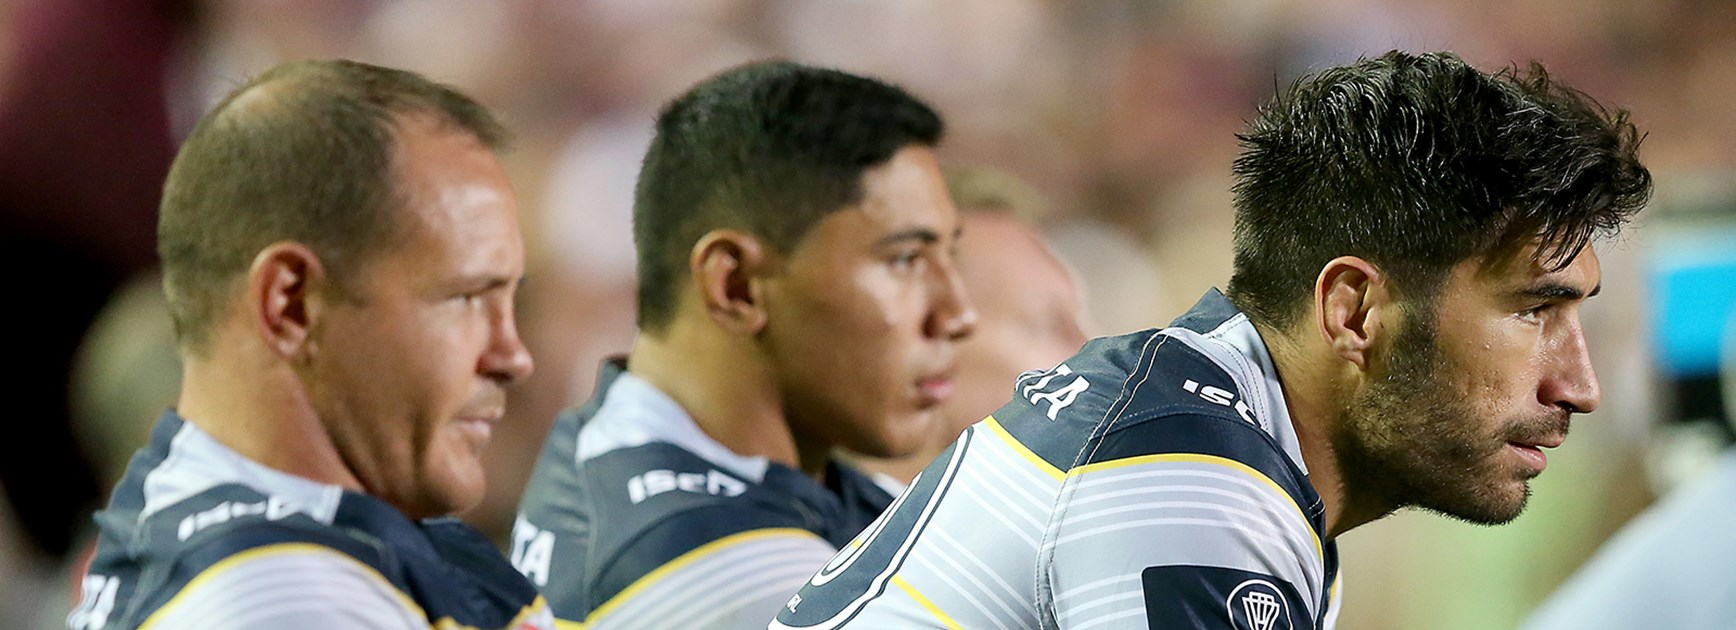 North Queensland Cowboys' minds are focused on beating the Broncos in an NRL semi-final.